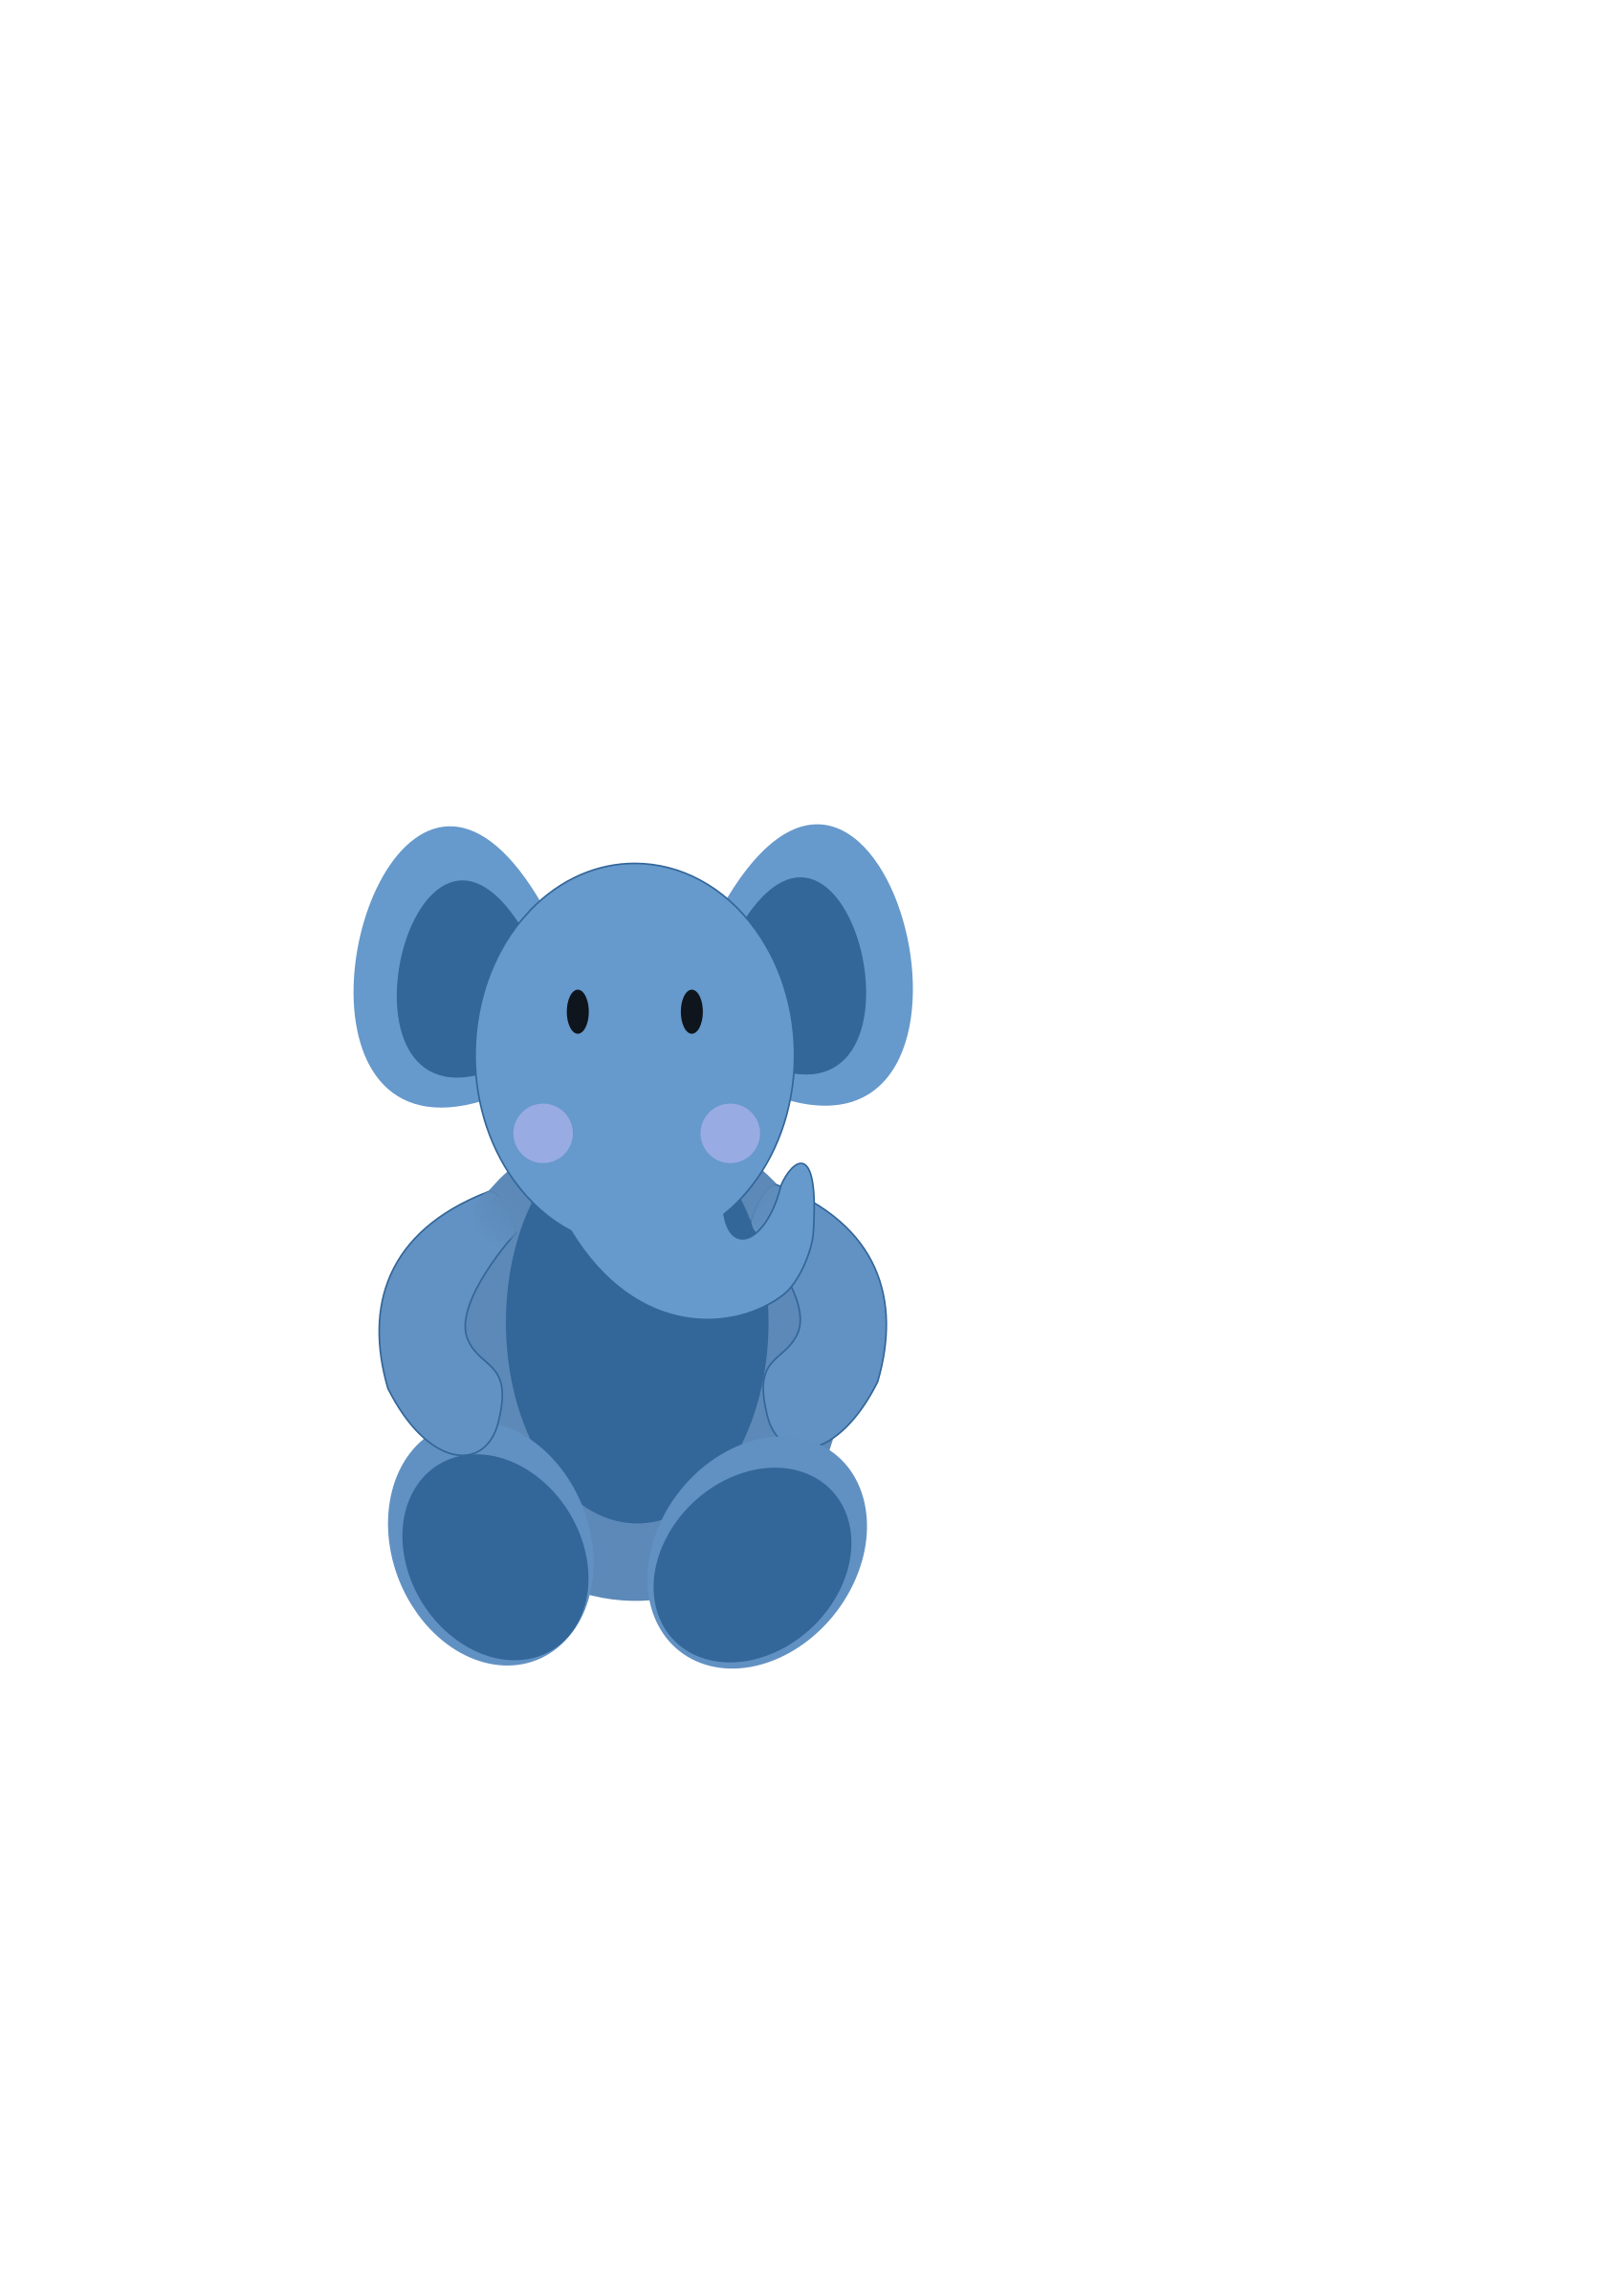 microsoft clip art elephant - photo #22